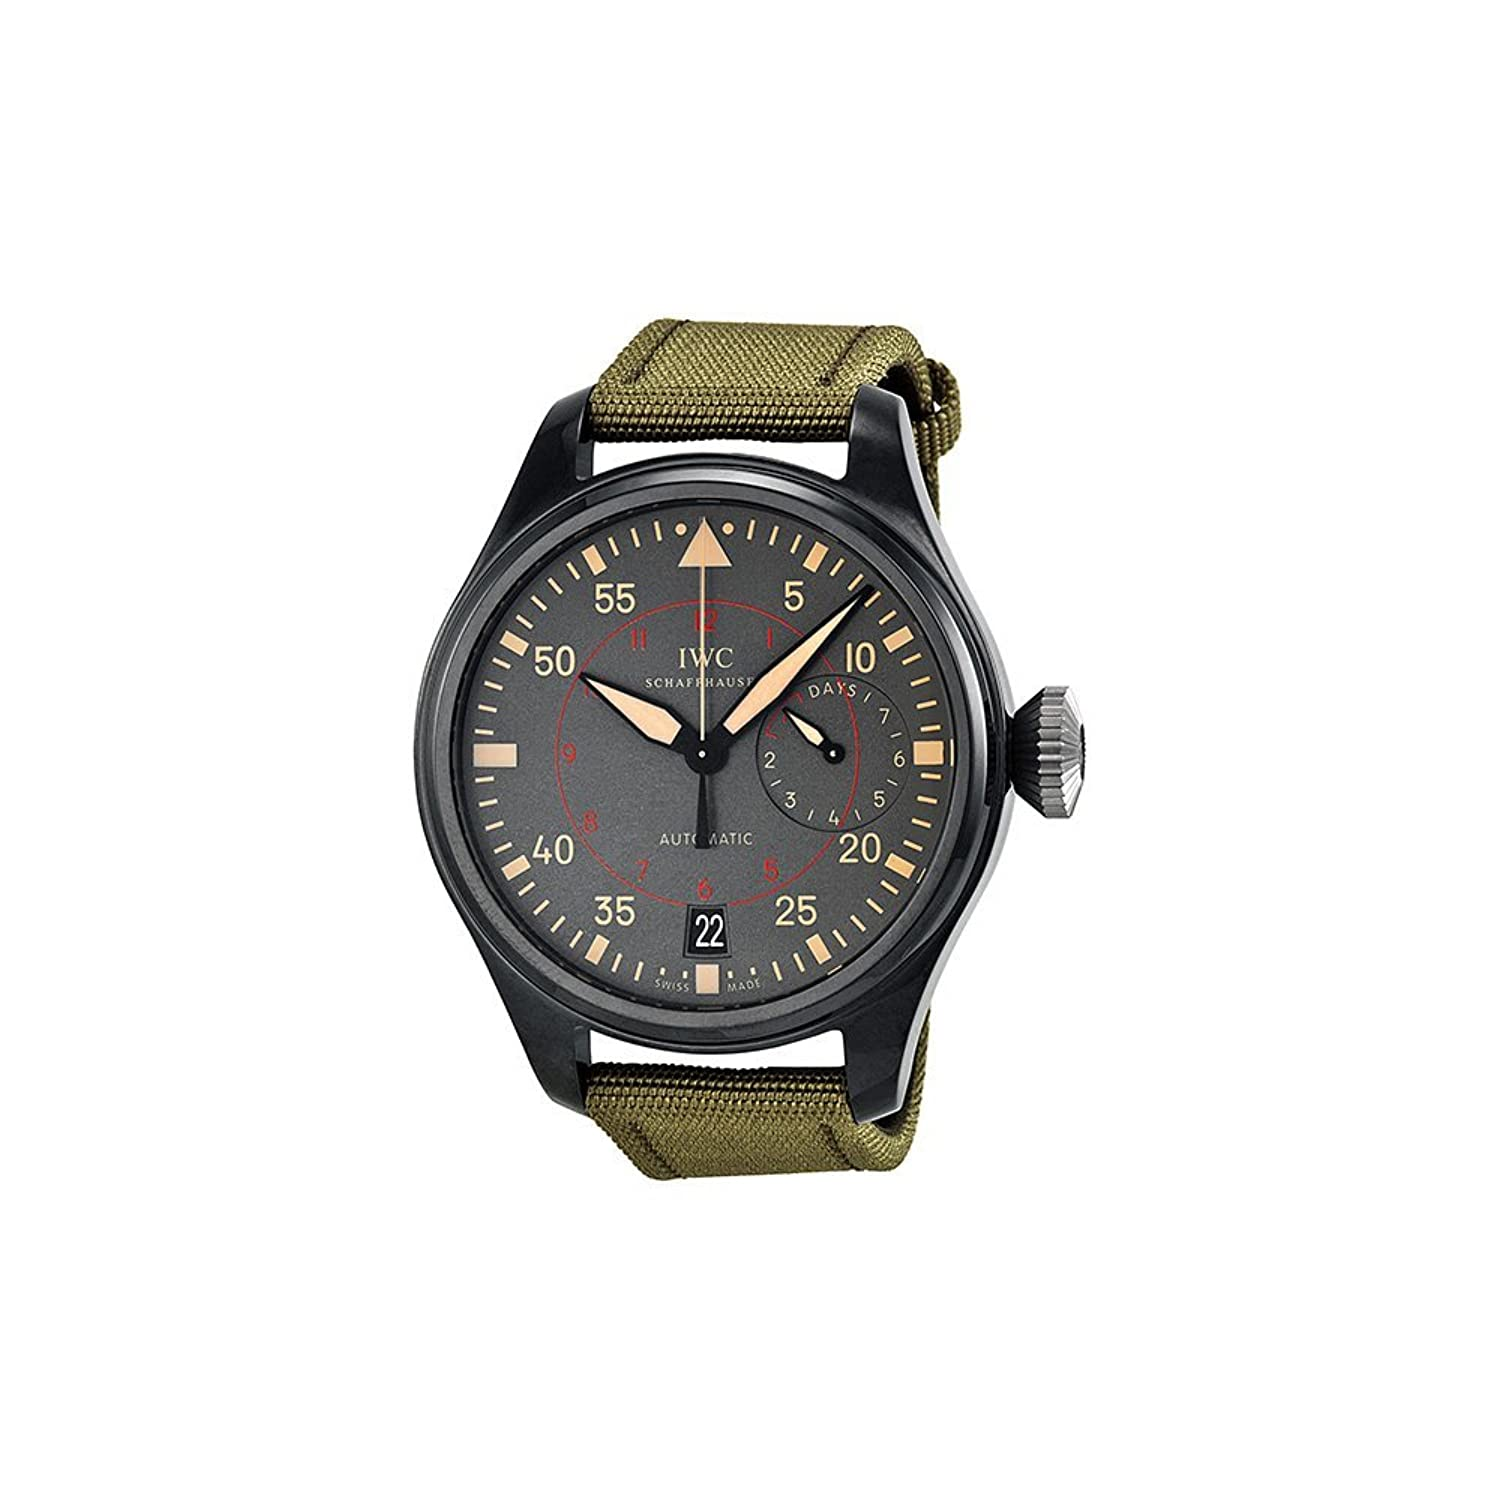 IWC Men 's Swiss AutomaticステンレススチールCasual Watch, Color : Black (Model : iw501902 ) B00AVXV3P2